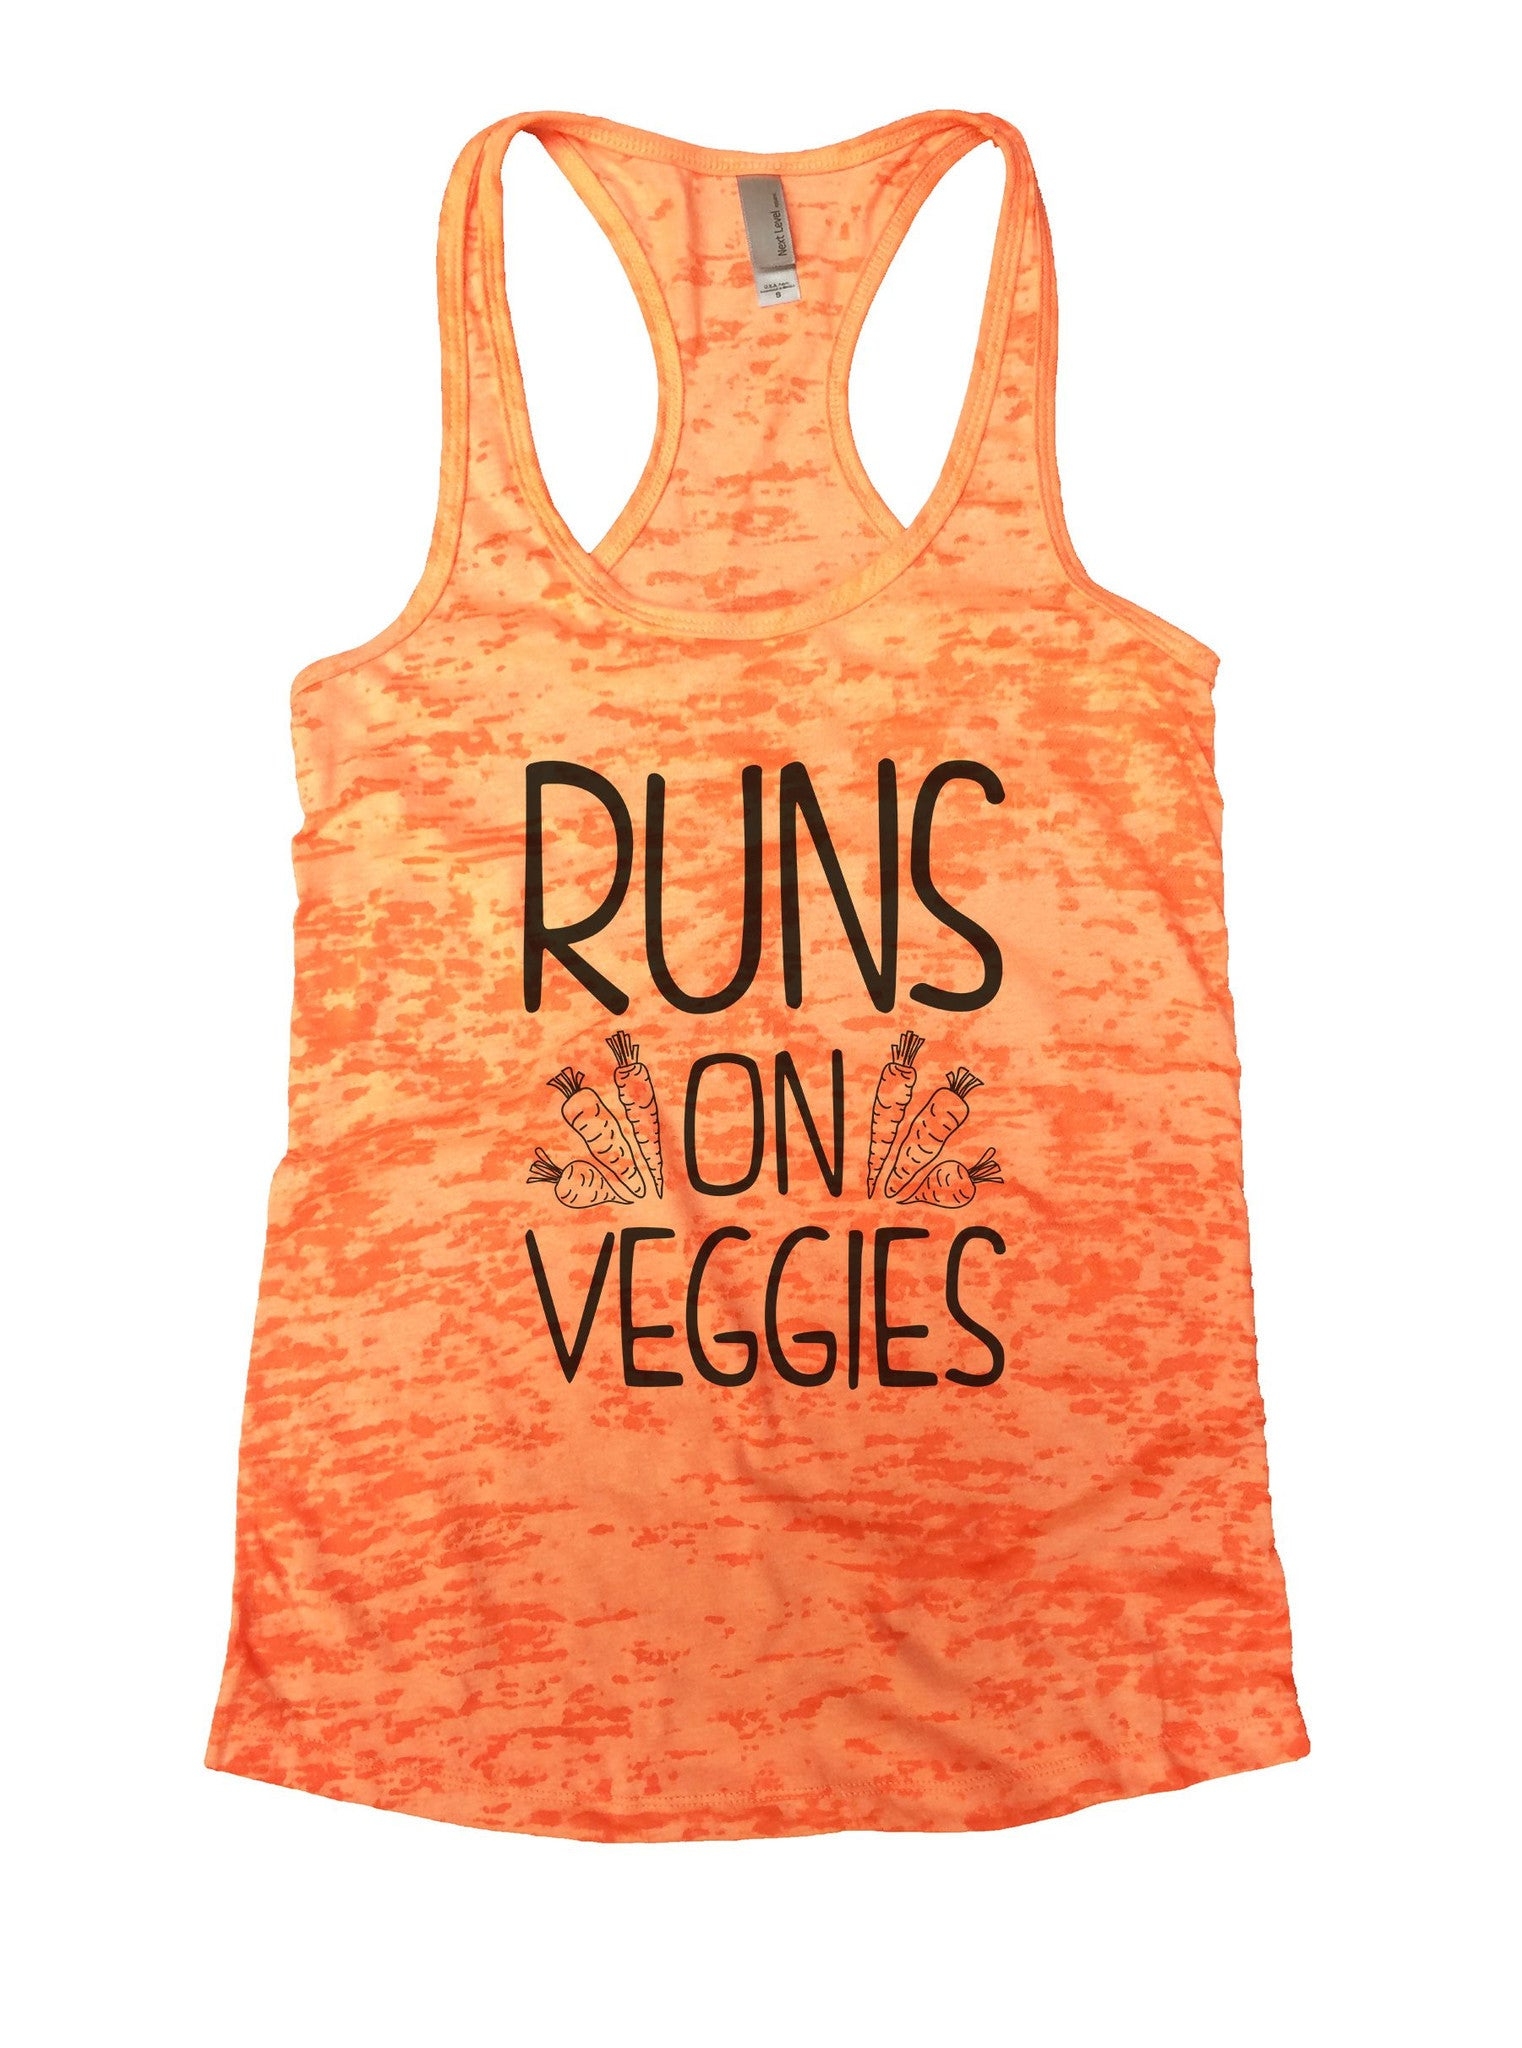 Runs On Veggies Burnout Tank Top By BurnoutTankTops.com - 1074 - Funny Shirts Tank Tops Burnouts and Triblends  - 3